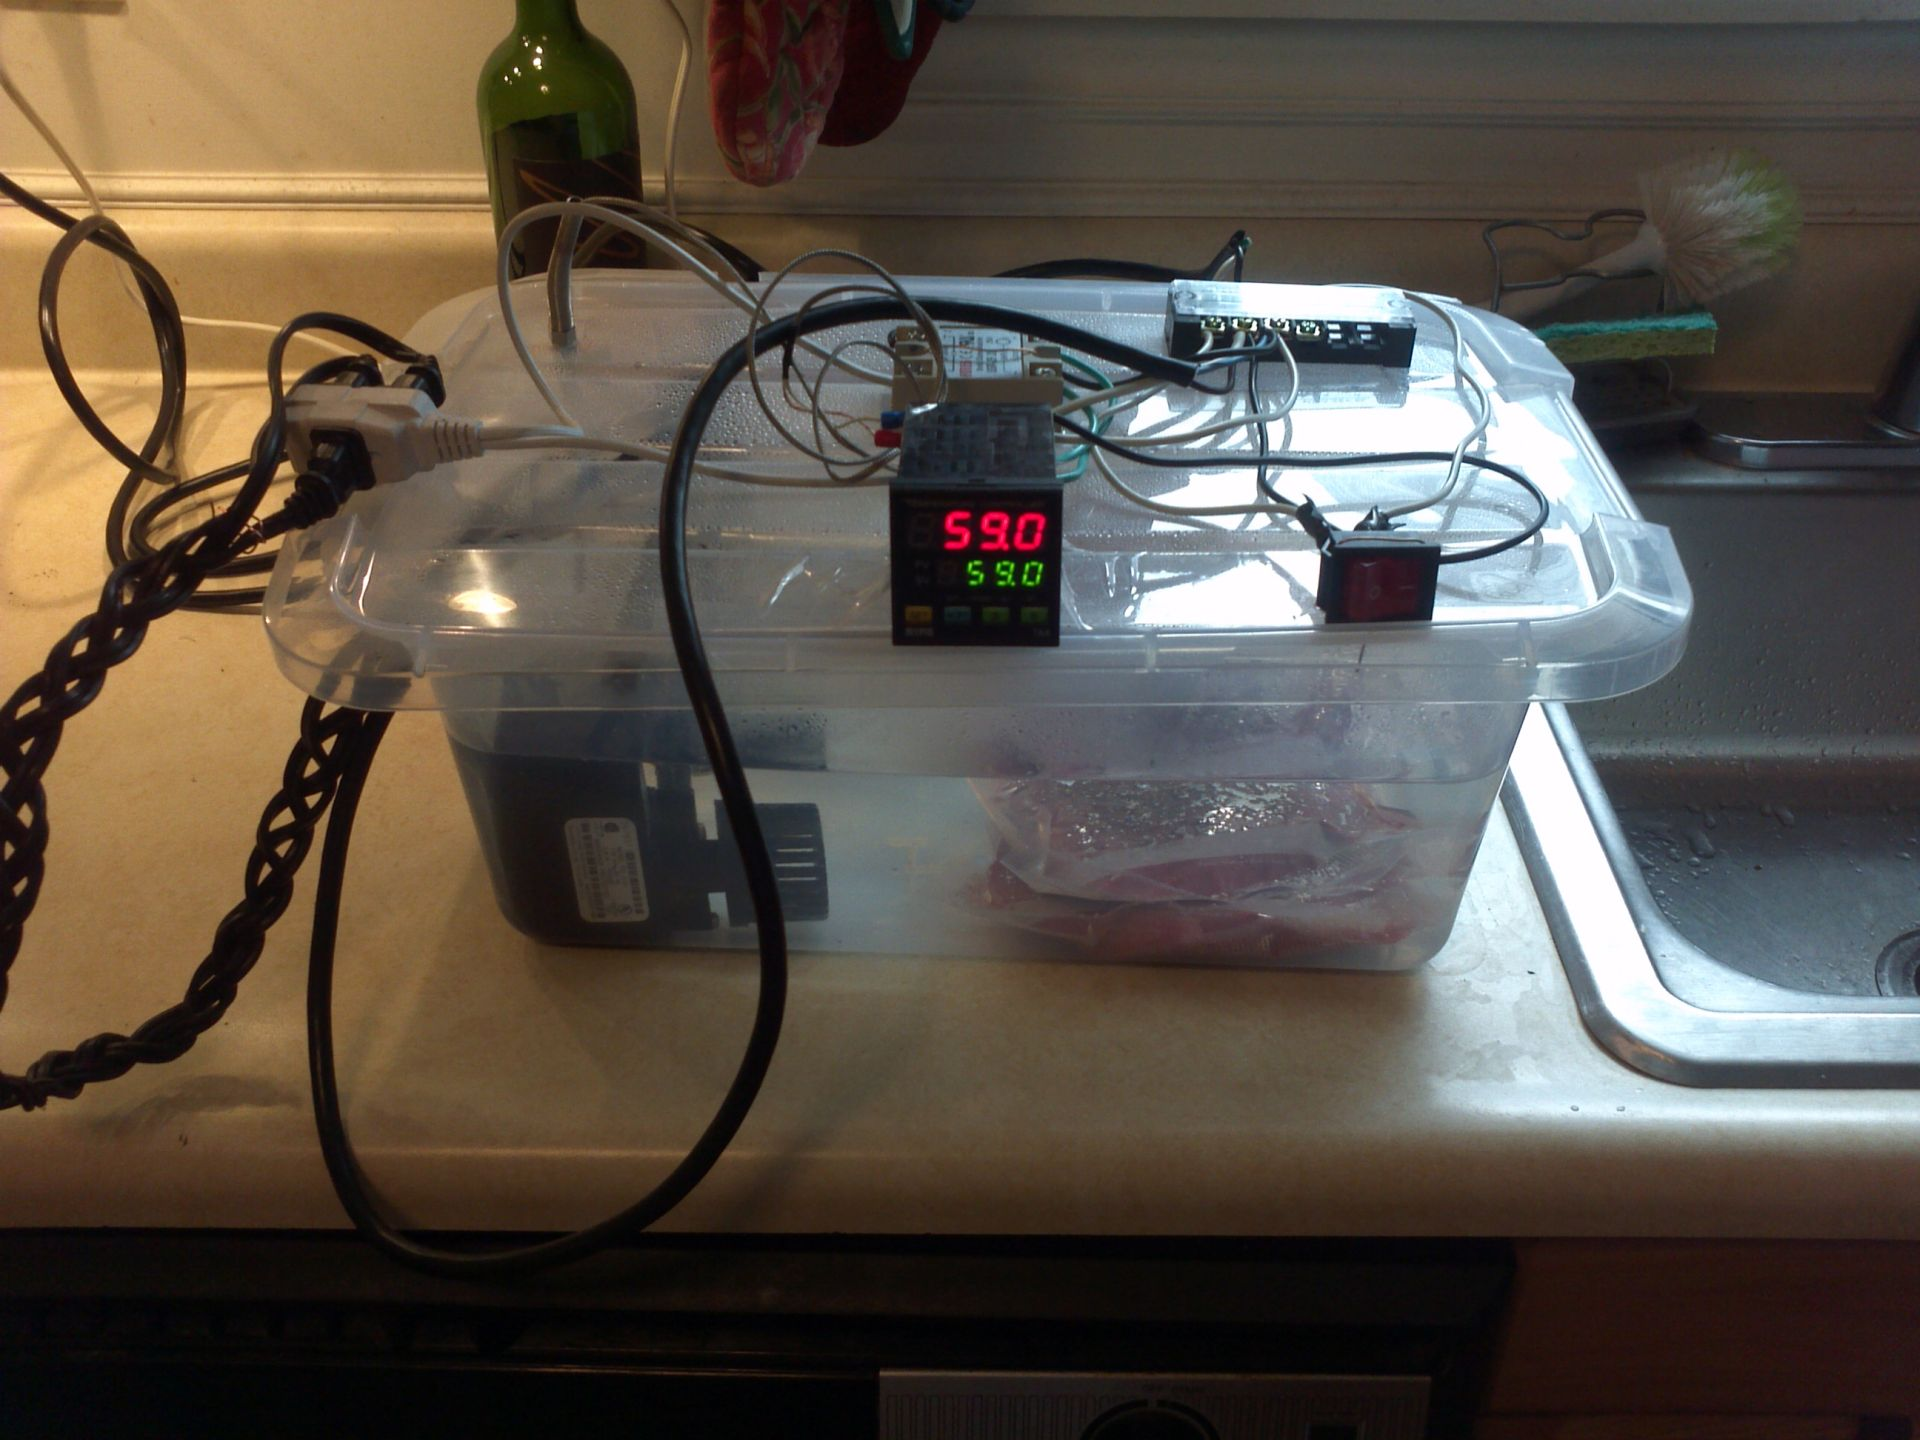 Caveman Sous Vide - Caveman Keto on ta22 wiring diagram, tr4 wiring diagram, tr6 wiring diagram, tr8 wiring diagram, cb7 wiring diagram, tr3 wiring diagram,